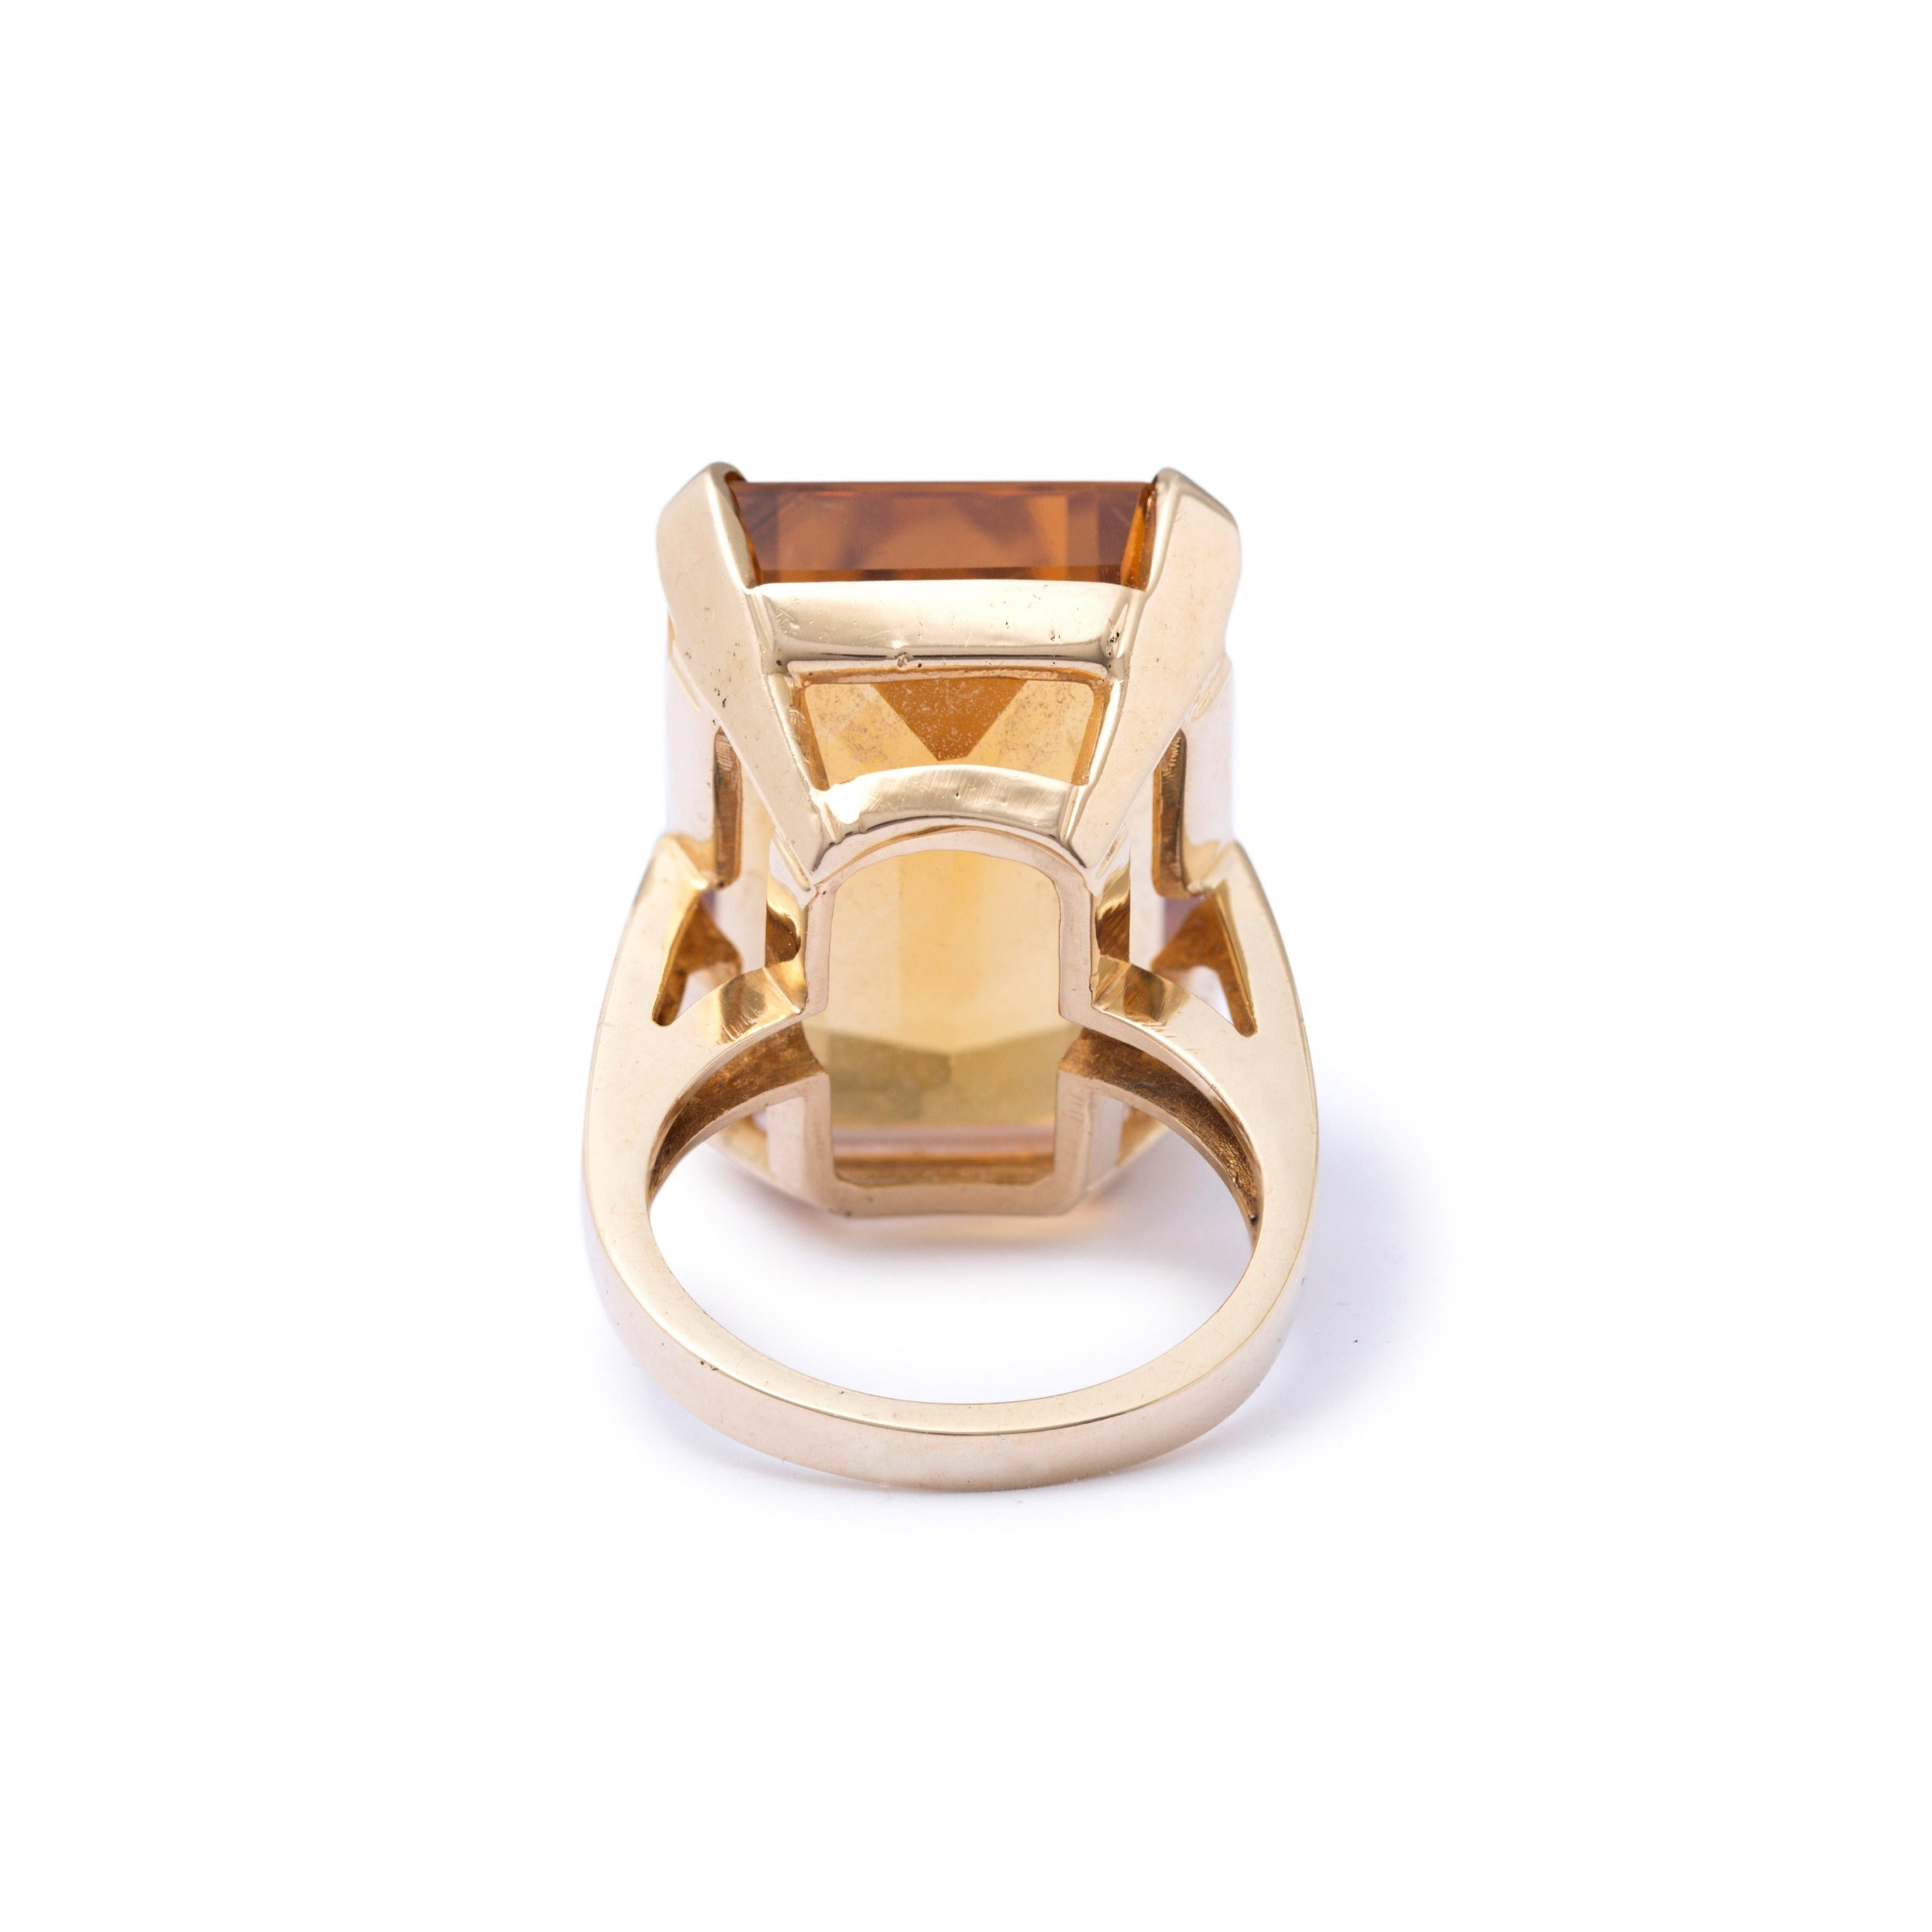 Large Citrine and 14k Gold Cocktail Ring